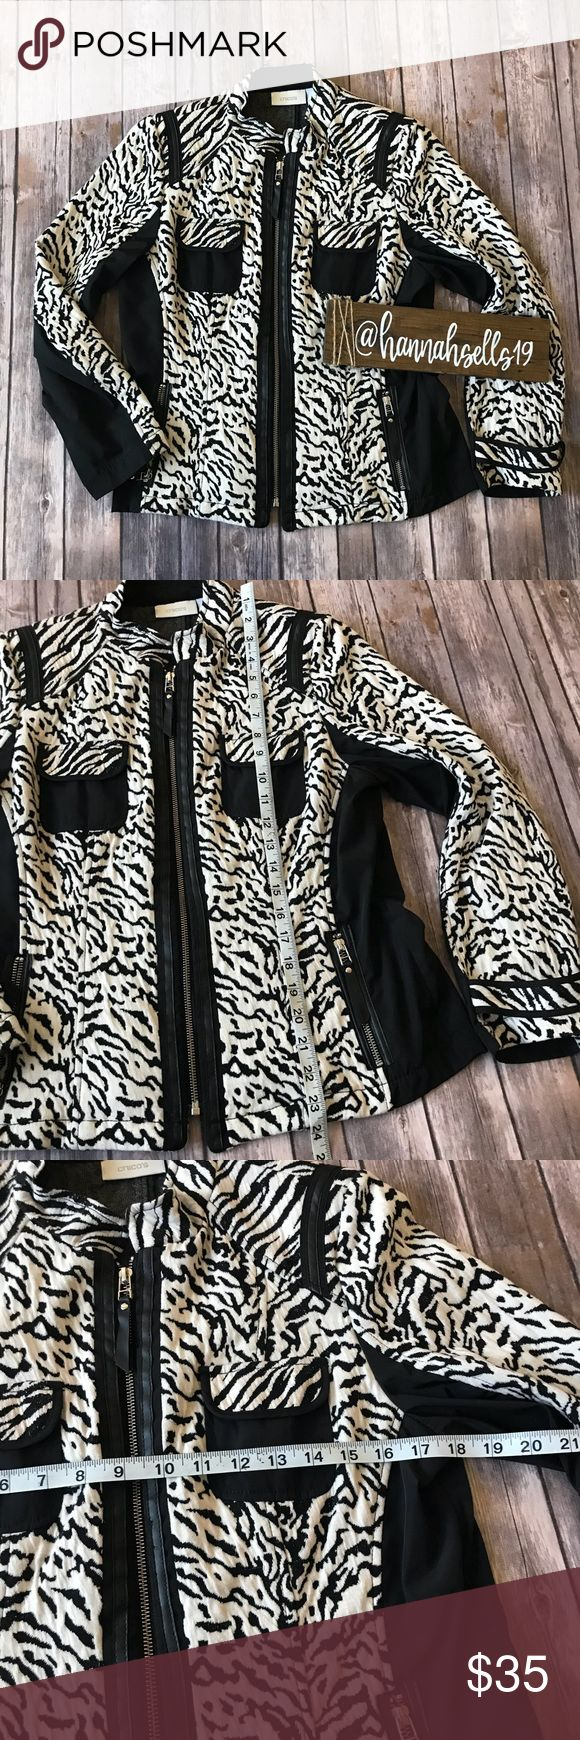 Chico's Animal Print Jacket Like new lightweight zip up jacket with black and white animal print. Perfect for Fall and Spring and can be worn for the office! This is a Chico's size 1 and concerts to a standard women's size 8 💠From a clean and smoke free home!💠 Add to a bundle to get a private discount💠Free Gift with $25+ Purchase 💠 Discount ALWAYS Available on 2+ items💠 No trades, holds, modeling or transactions off of Poshmark.💠 Chico's Jackets & Coats